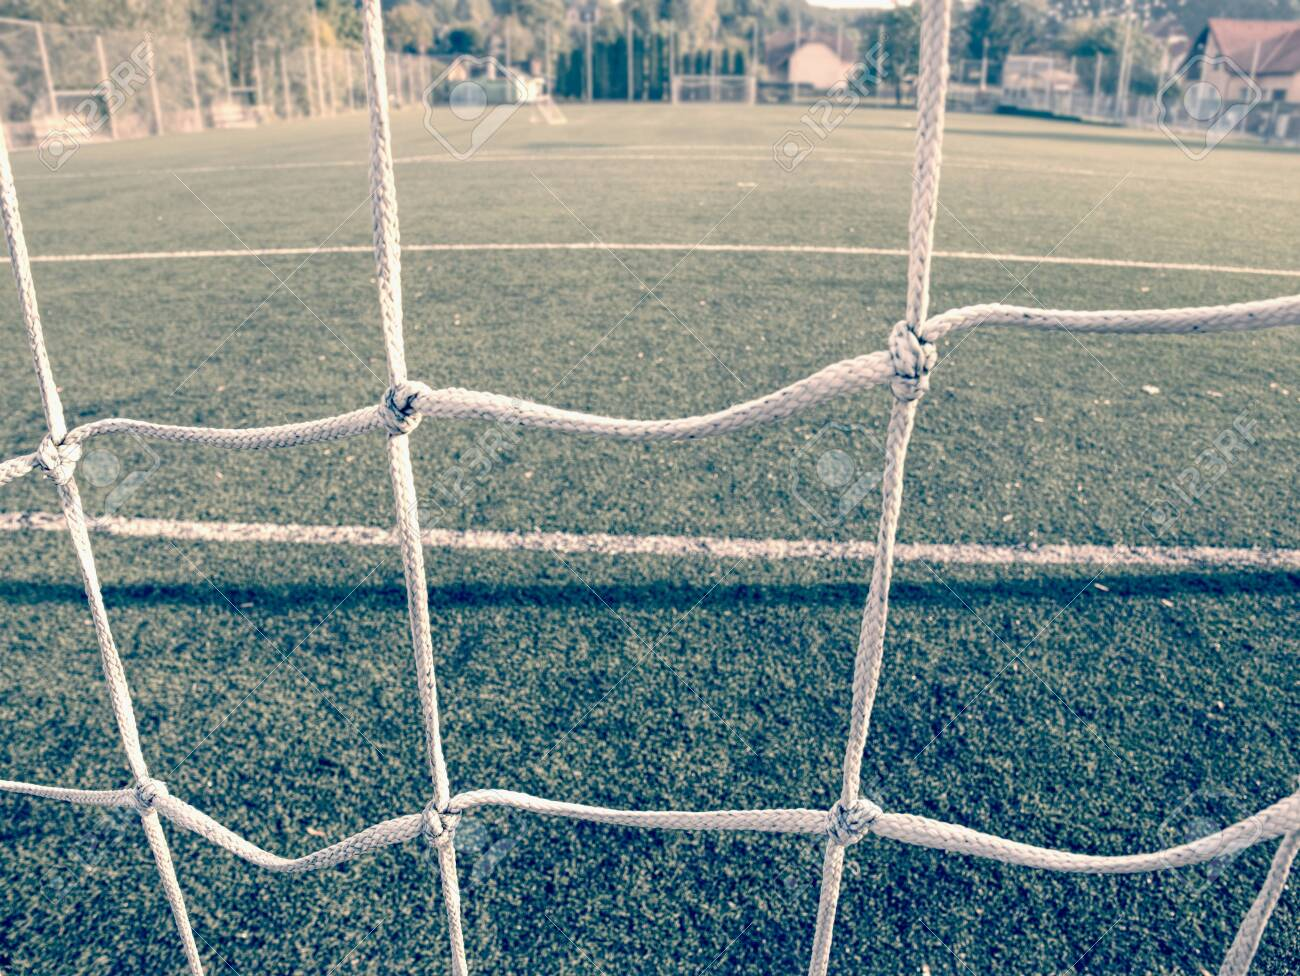 Wet Green Grass Carpet With White Lines Soccer Field On Outdoor Stock Photo Picture And Royalty Free Image Image 122292829